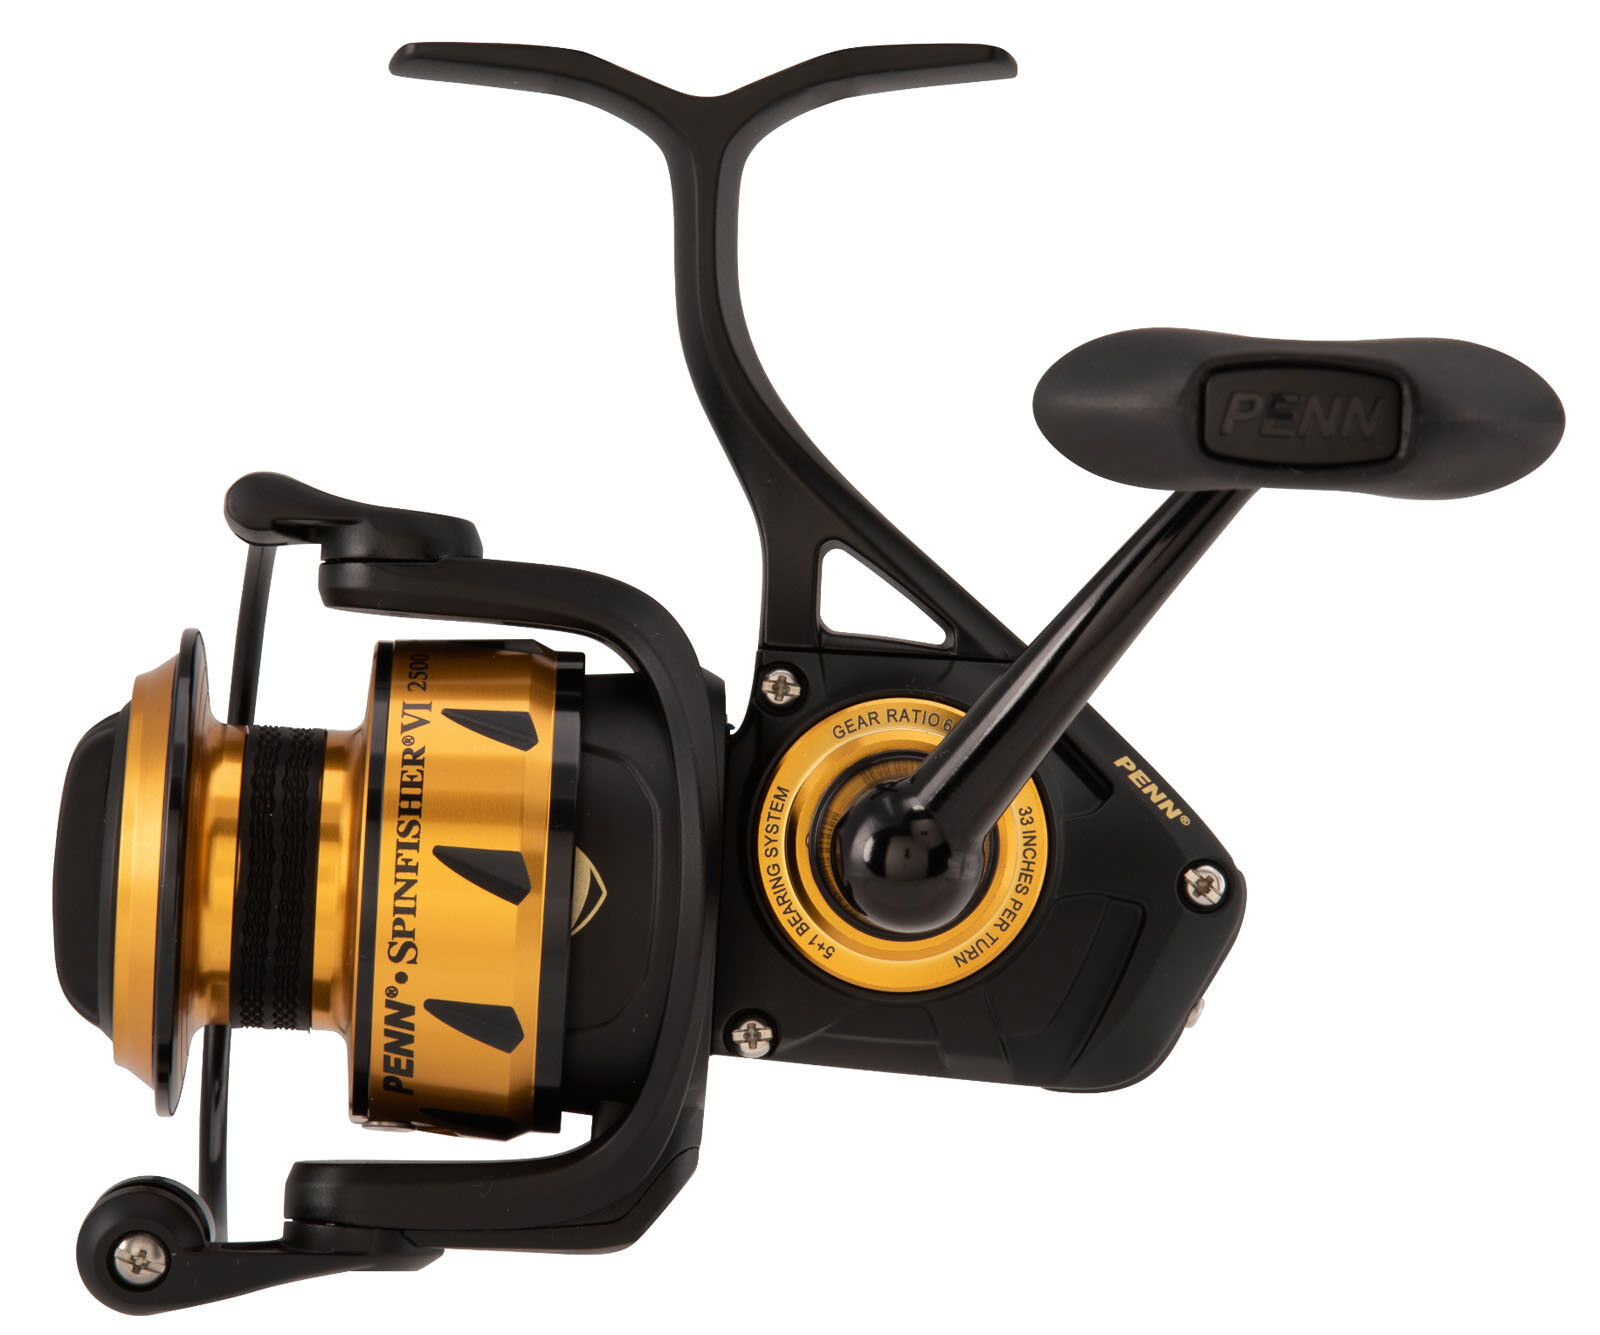 New Penn Spinfisher VI Spin Sea Spinning Fixed Spool Fishing Reel - All Models